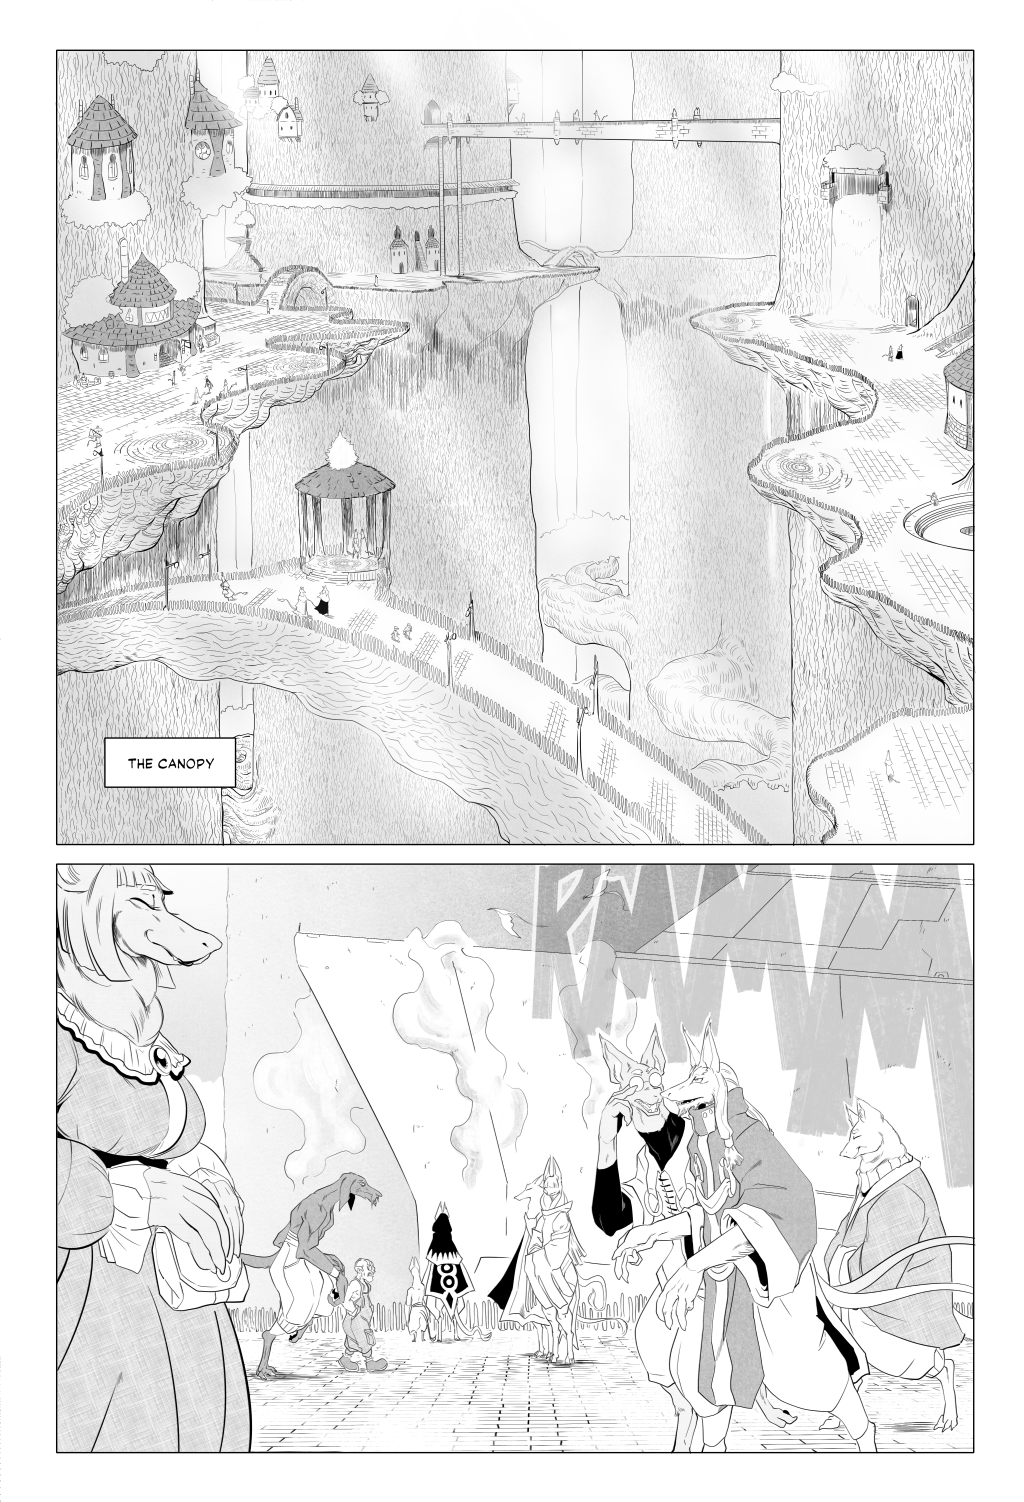 Book I • Page 27